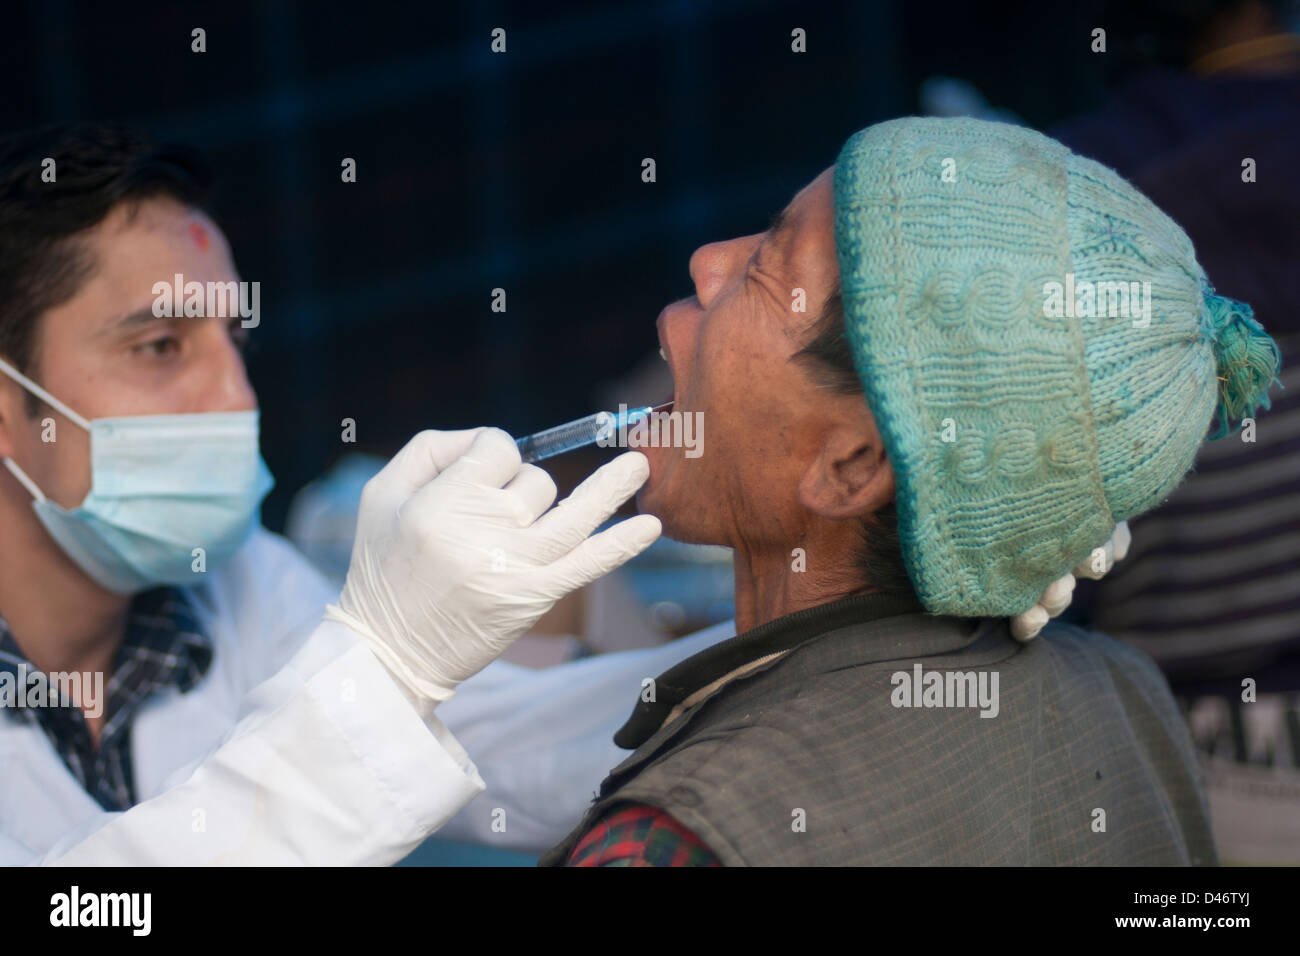 Dentist injecting man before tooth extraction - Stock Image